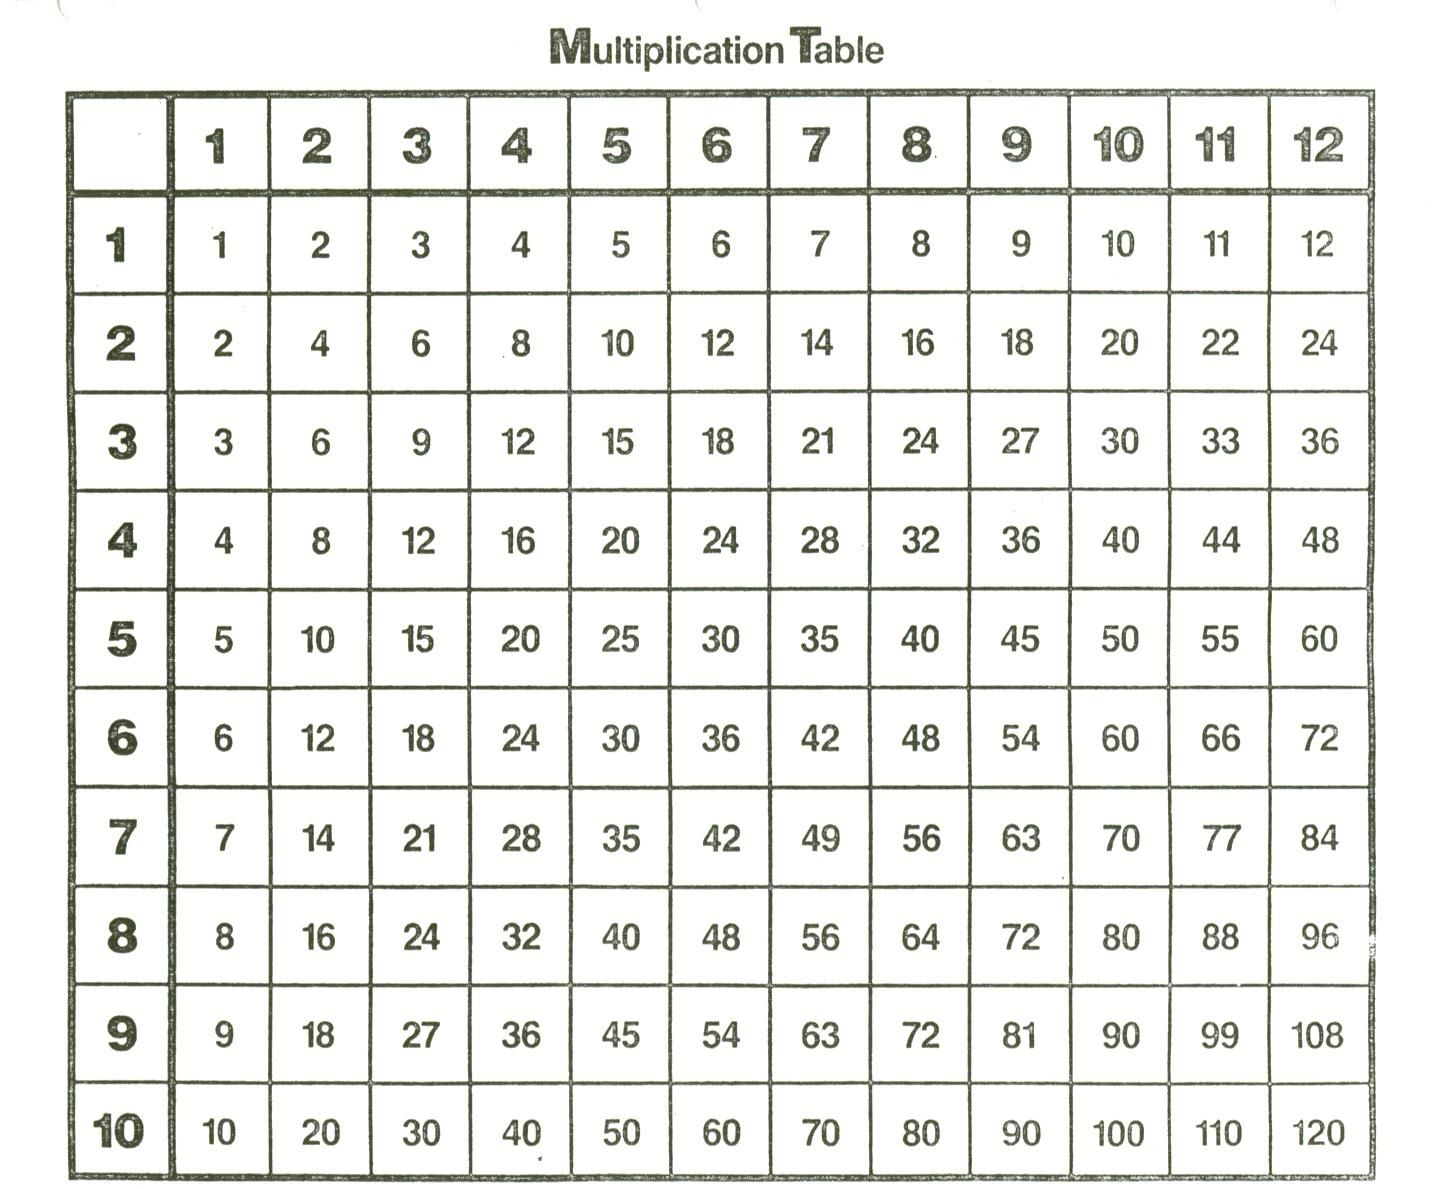 Worksheet 12 Times Multiplication Table times table chart 1 12 printable tables inspiring ideas pinterest student centered resources and learning